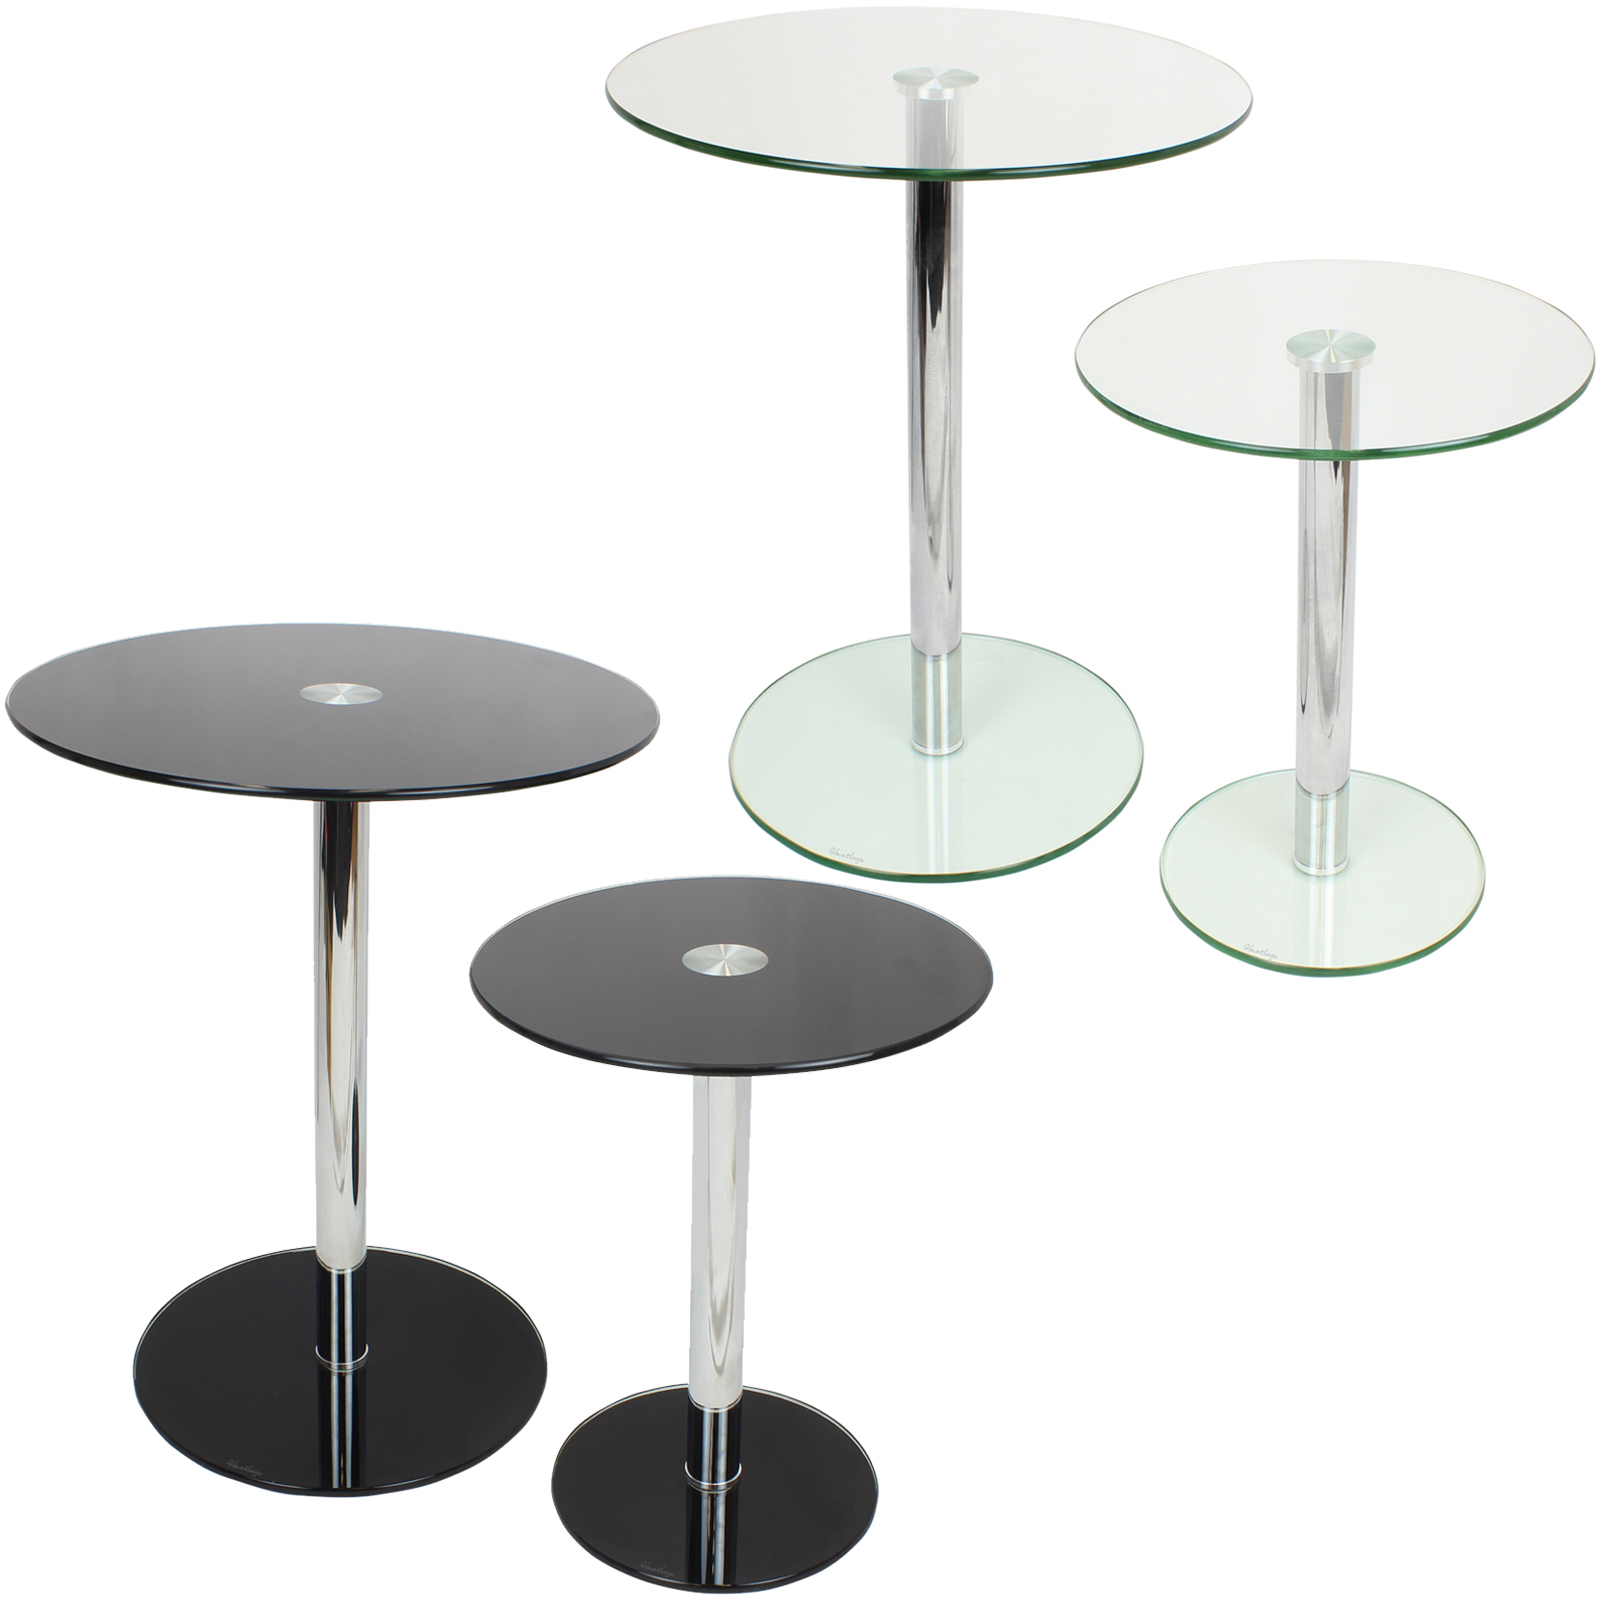 End Table Lamps For Living Room Home Combo Lamp Tables: SET OF 2 ROUND GLASS TABLES HOME/LOUNGE/LIVING ROOM SIDE